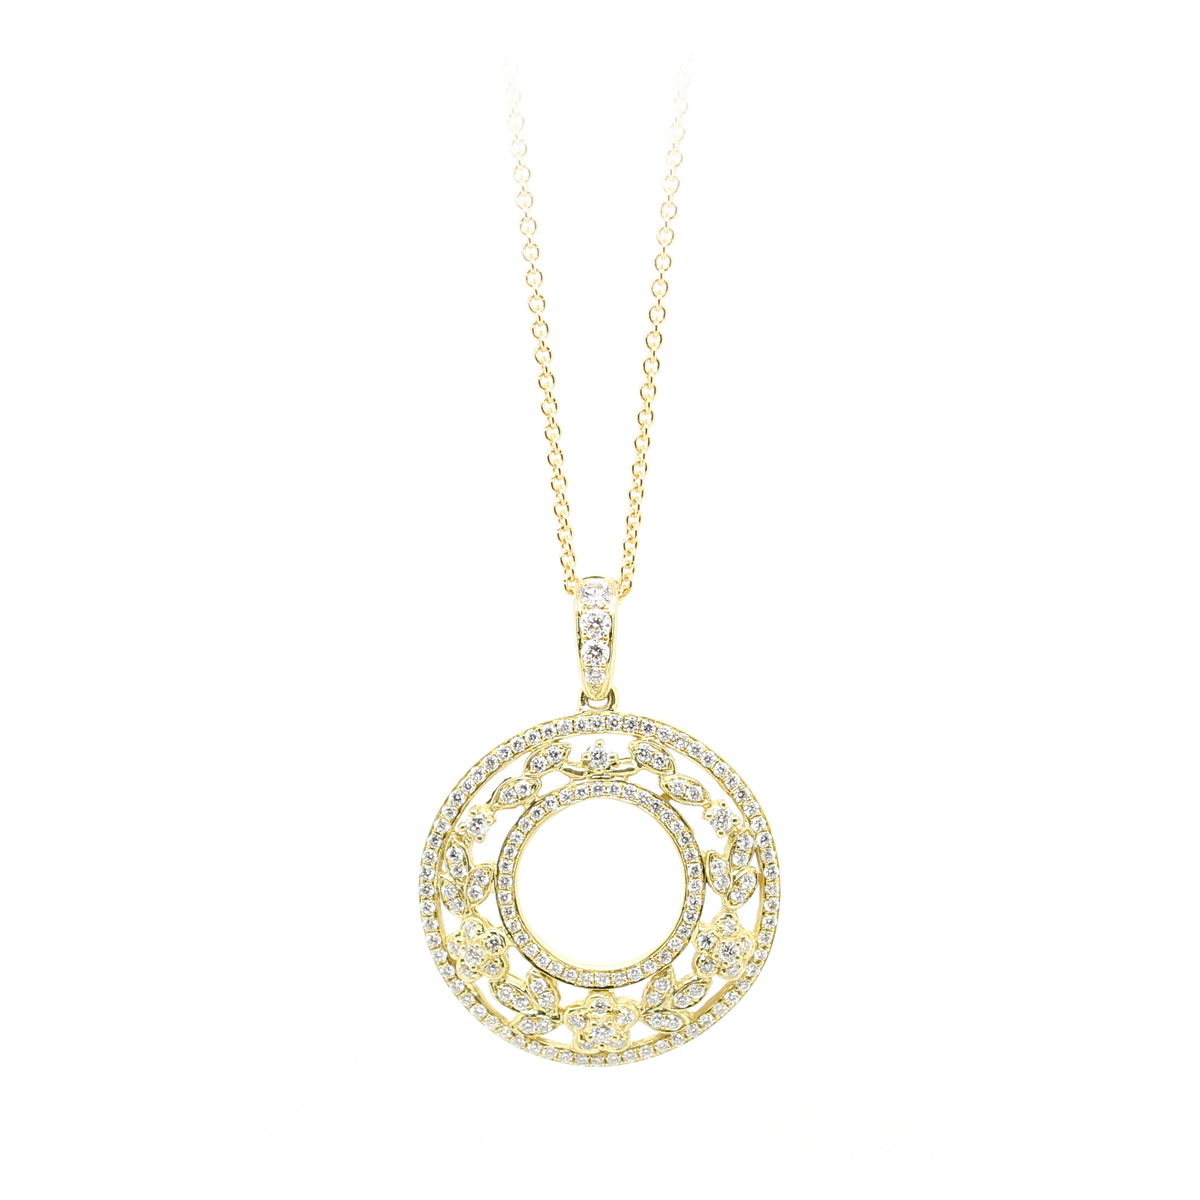 Charles Krypell 18 Karat Yellow Gold Cutout Circle Diamond Pendant Necklace